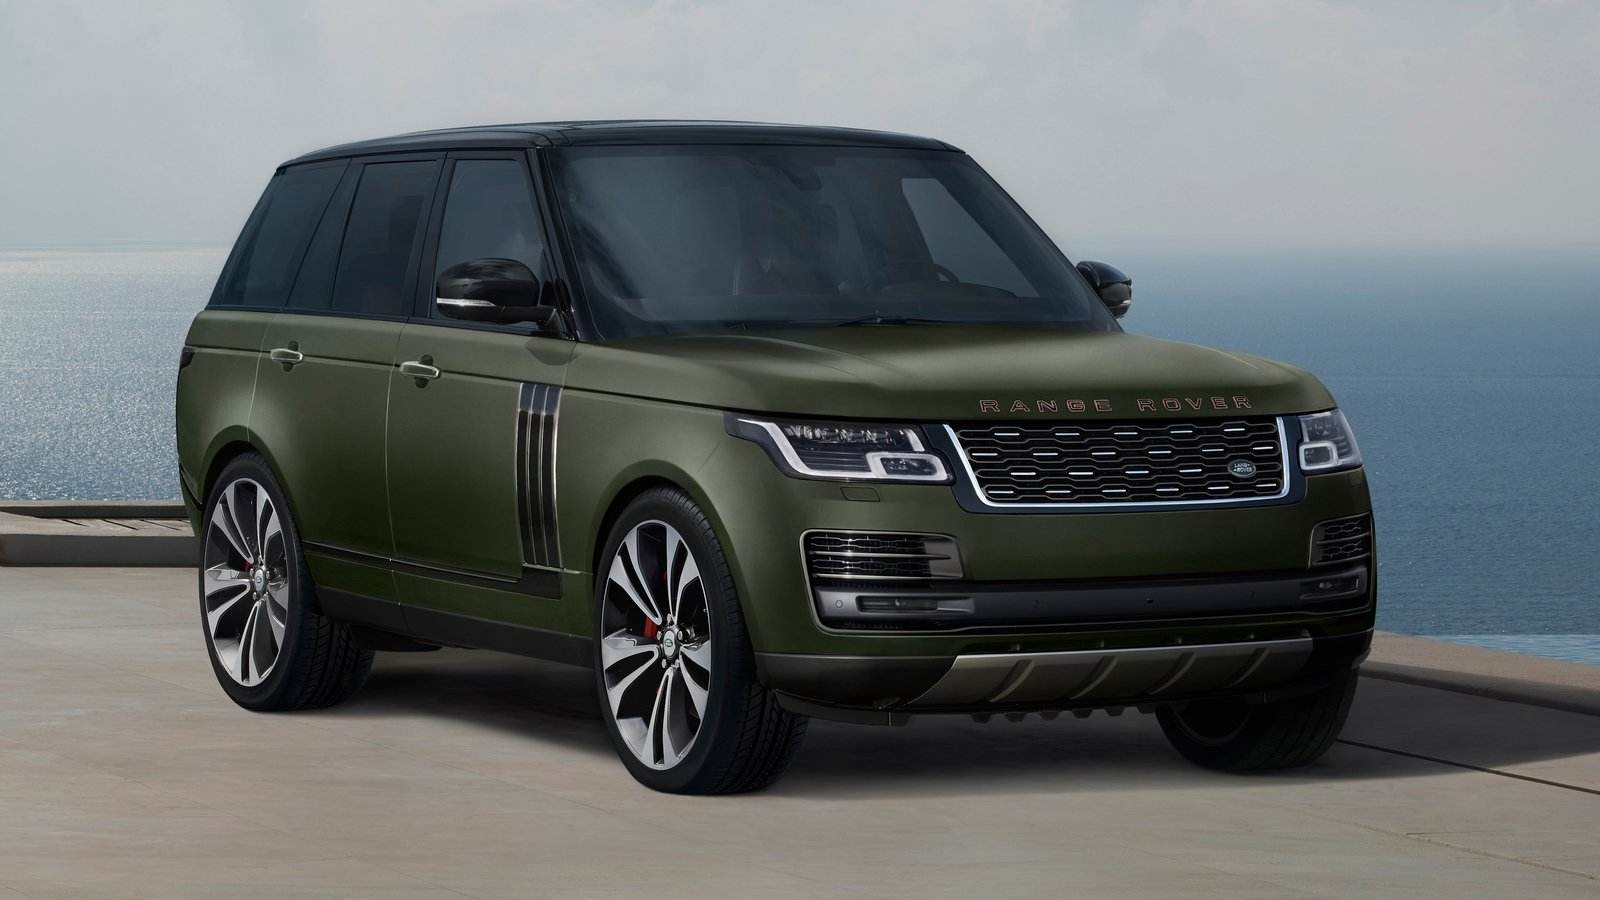 Range Rover SVAutobiography Ultimate editions debut, V8 and hybrid powertrains on offer